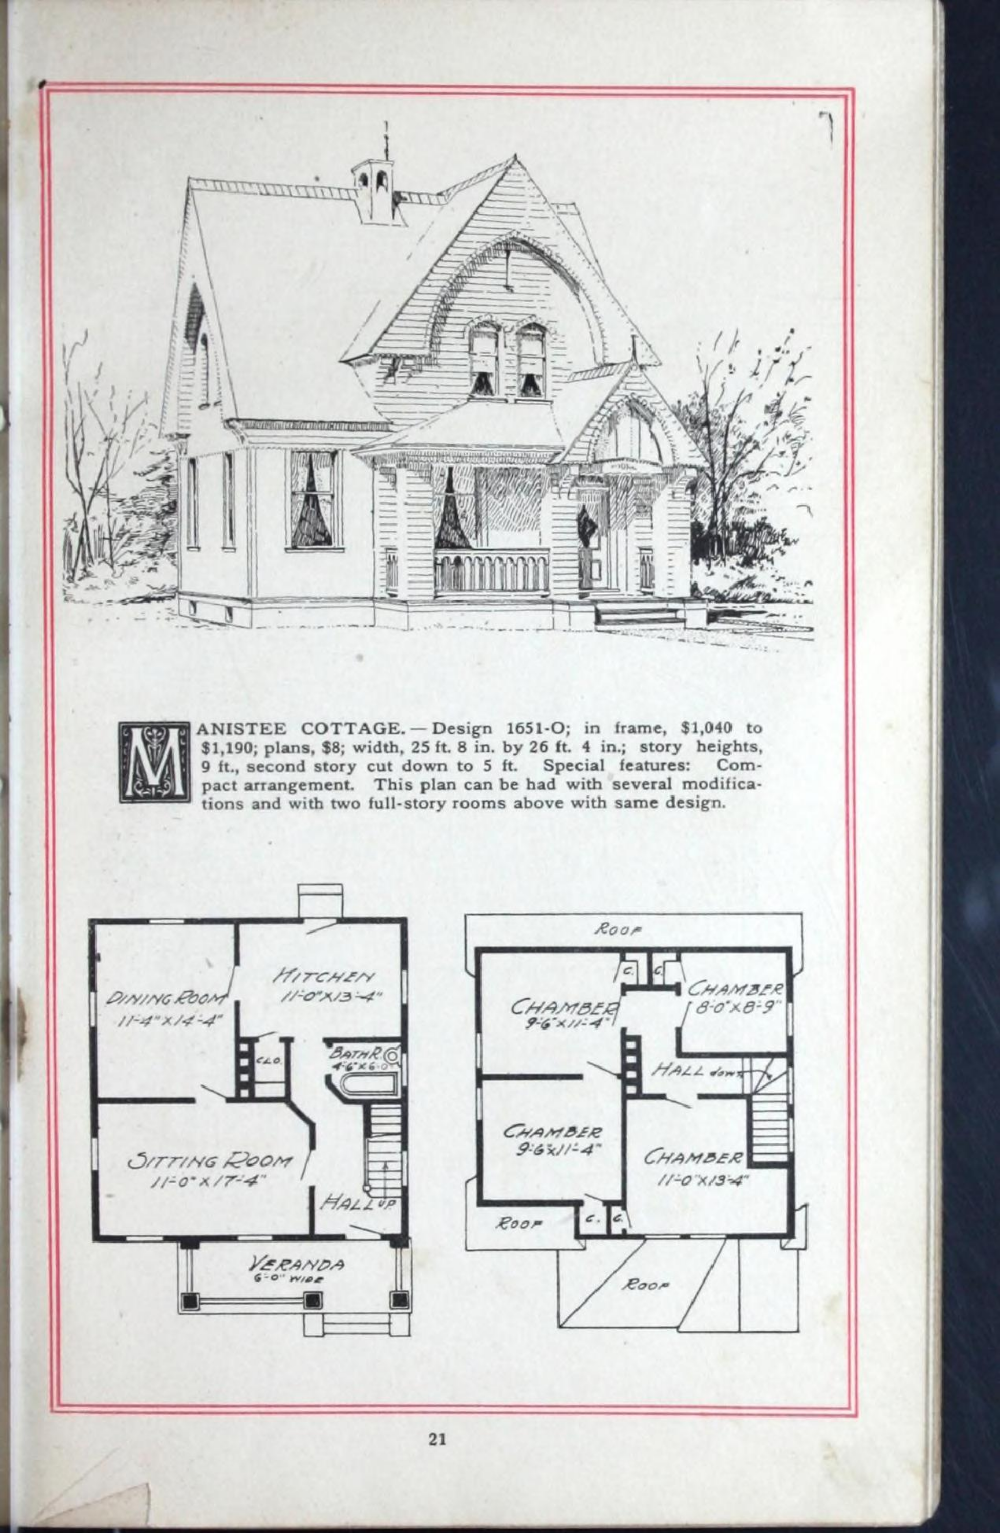 Artistic Homes Herbert C Chivers Architect Chivers Herbert C Free Download Borrow And Streaming Internet Archive Architect Blueprints Internet Archive